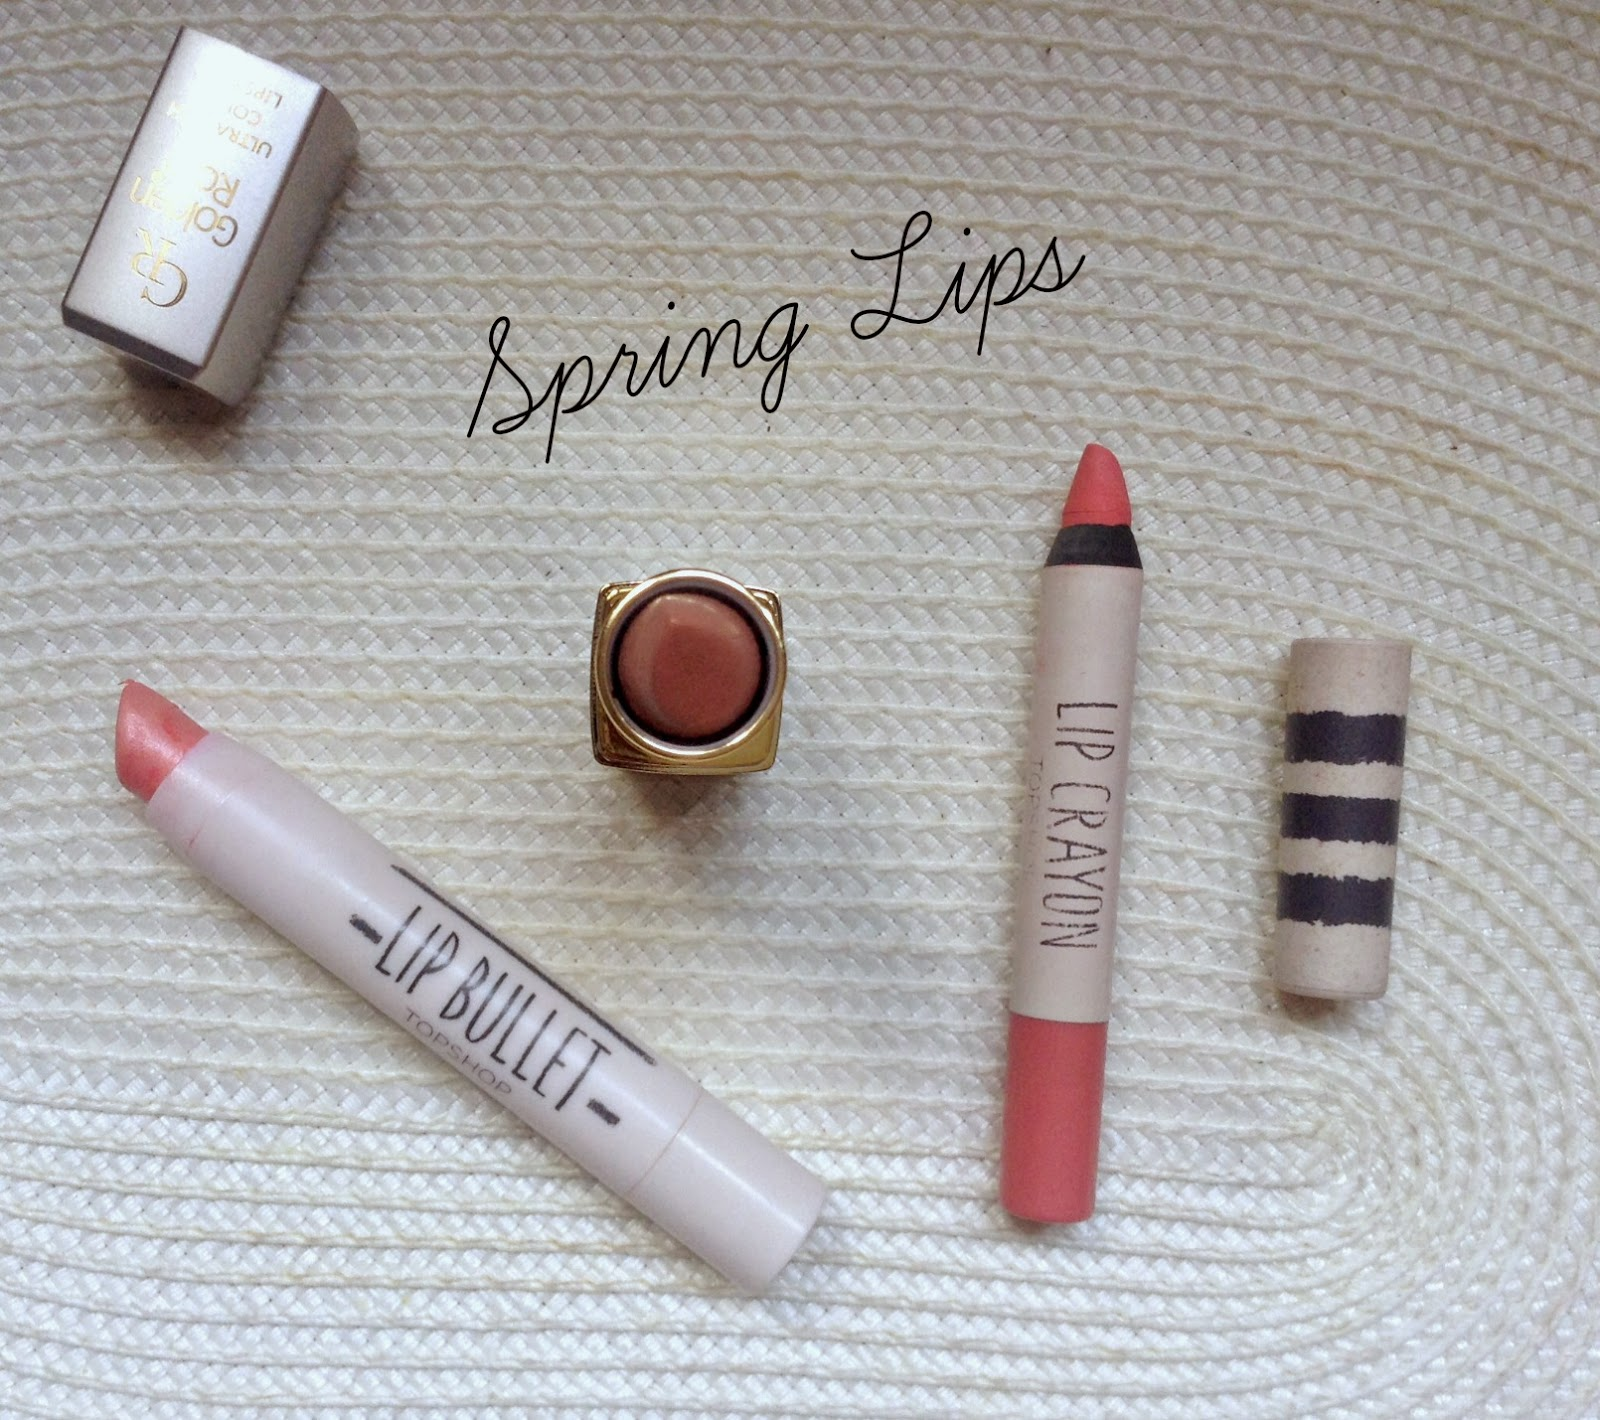 Golden Rose - Topshop Lip Bullet - Topshop Lip Crayon swatches spring lips